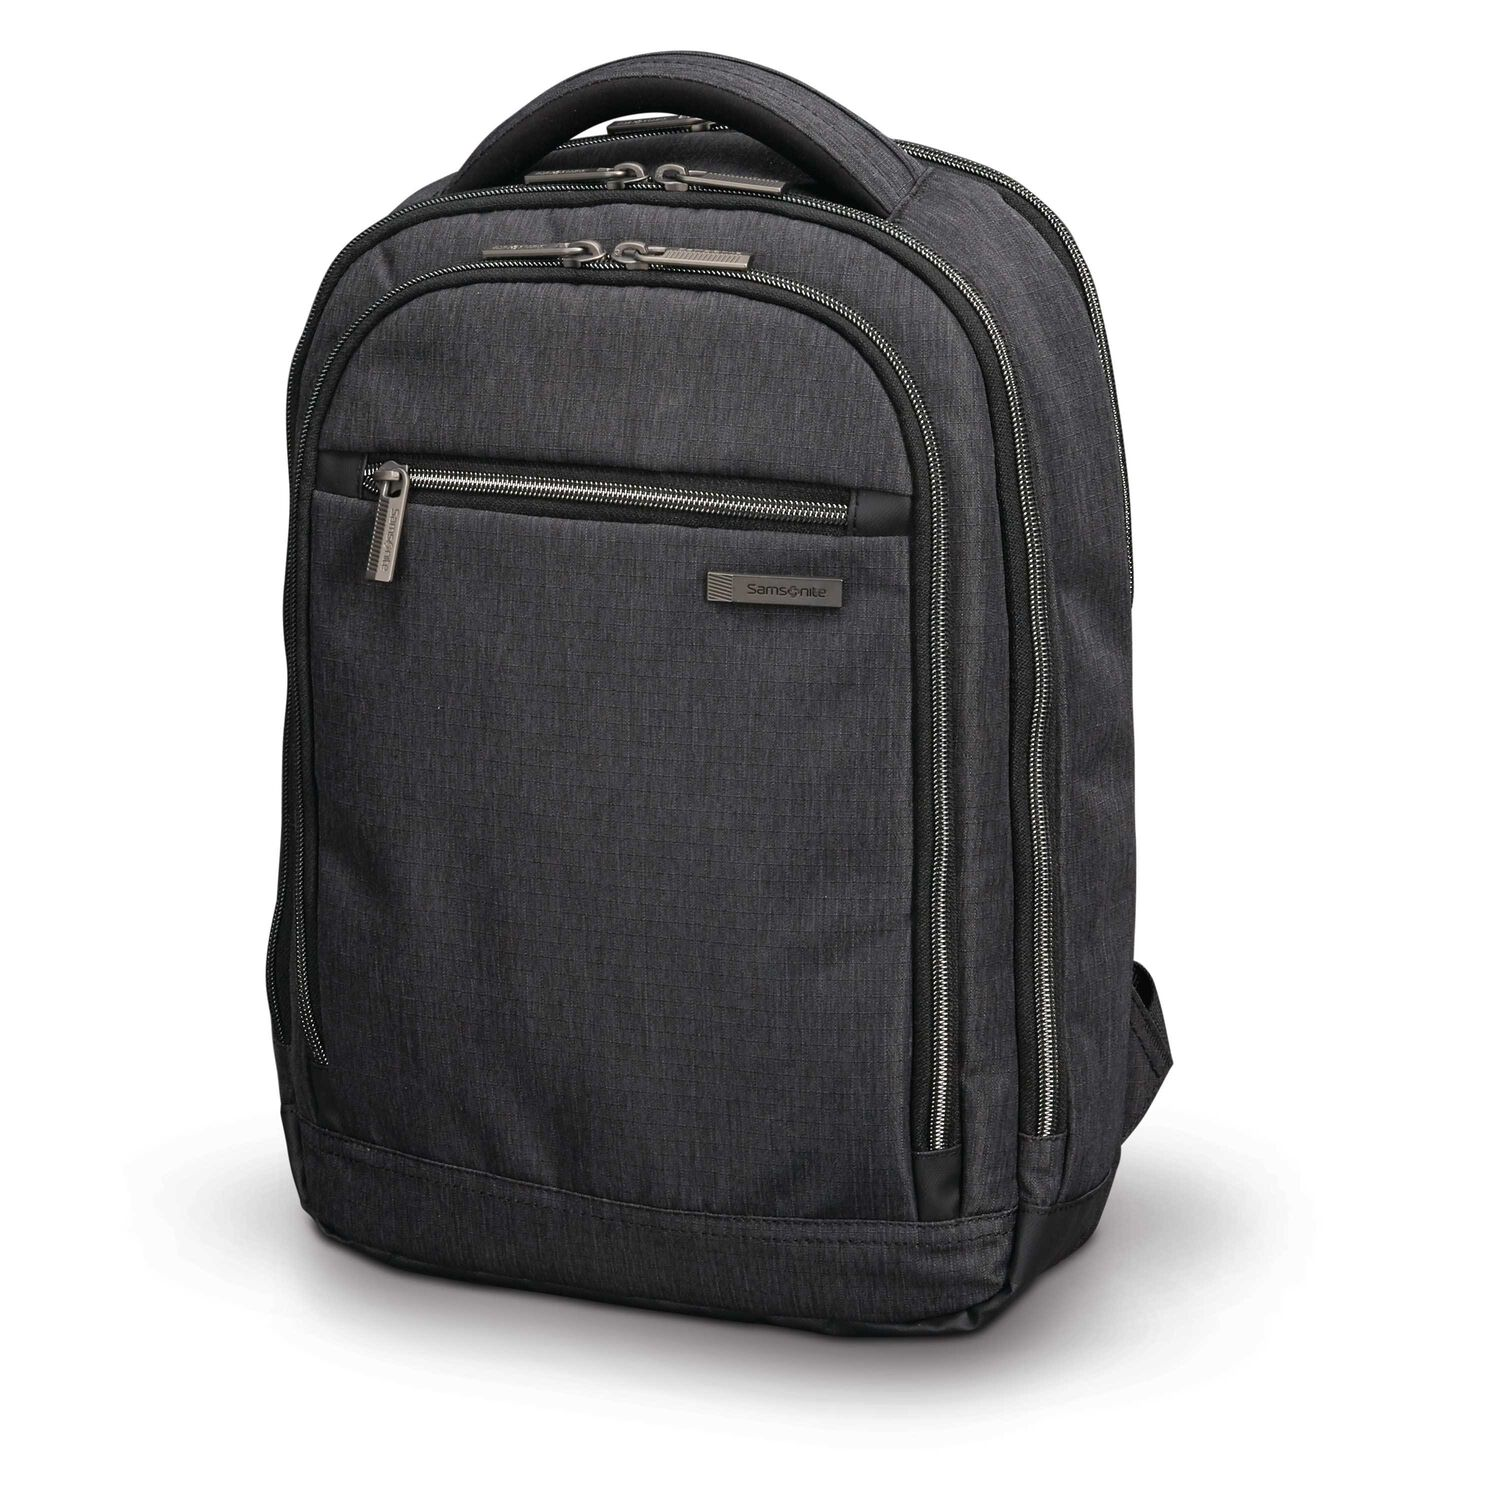 db47e0cca98 Samsonite Modern Utility Small Backpack in the color Charcoal  Heather Charcoal.